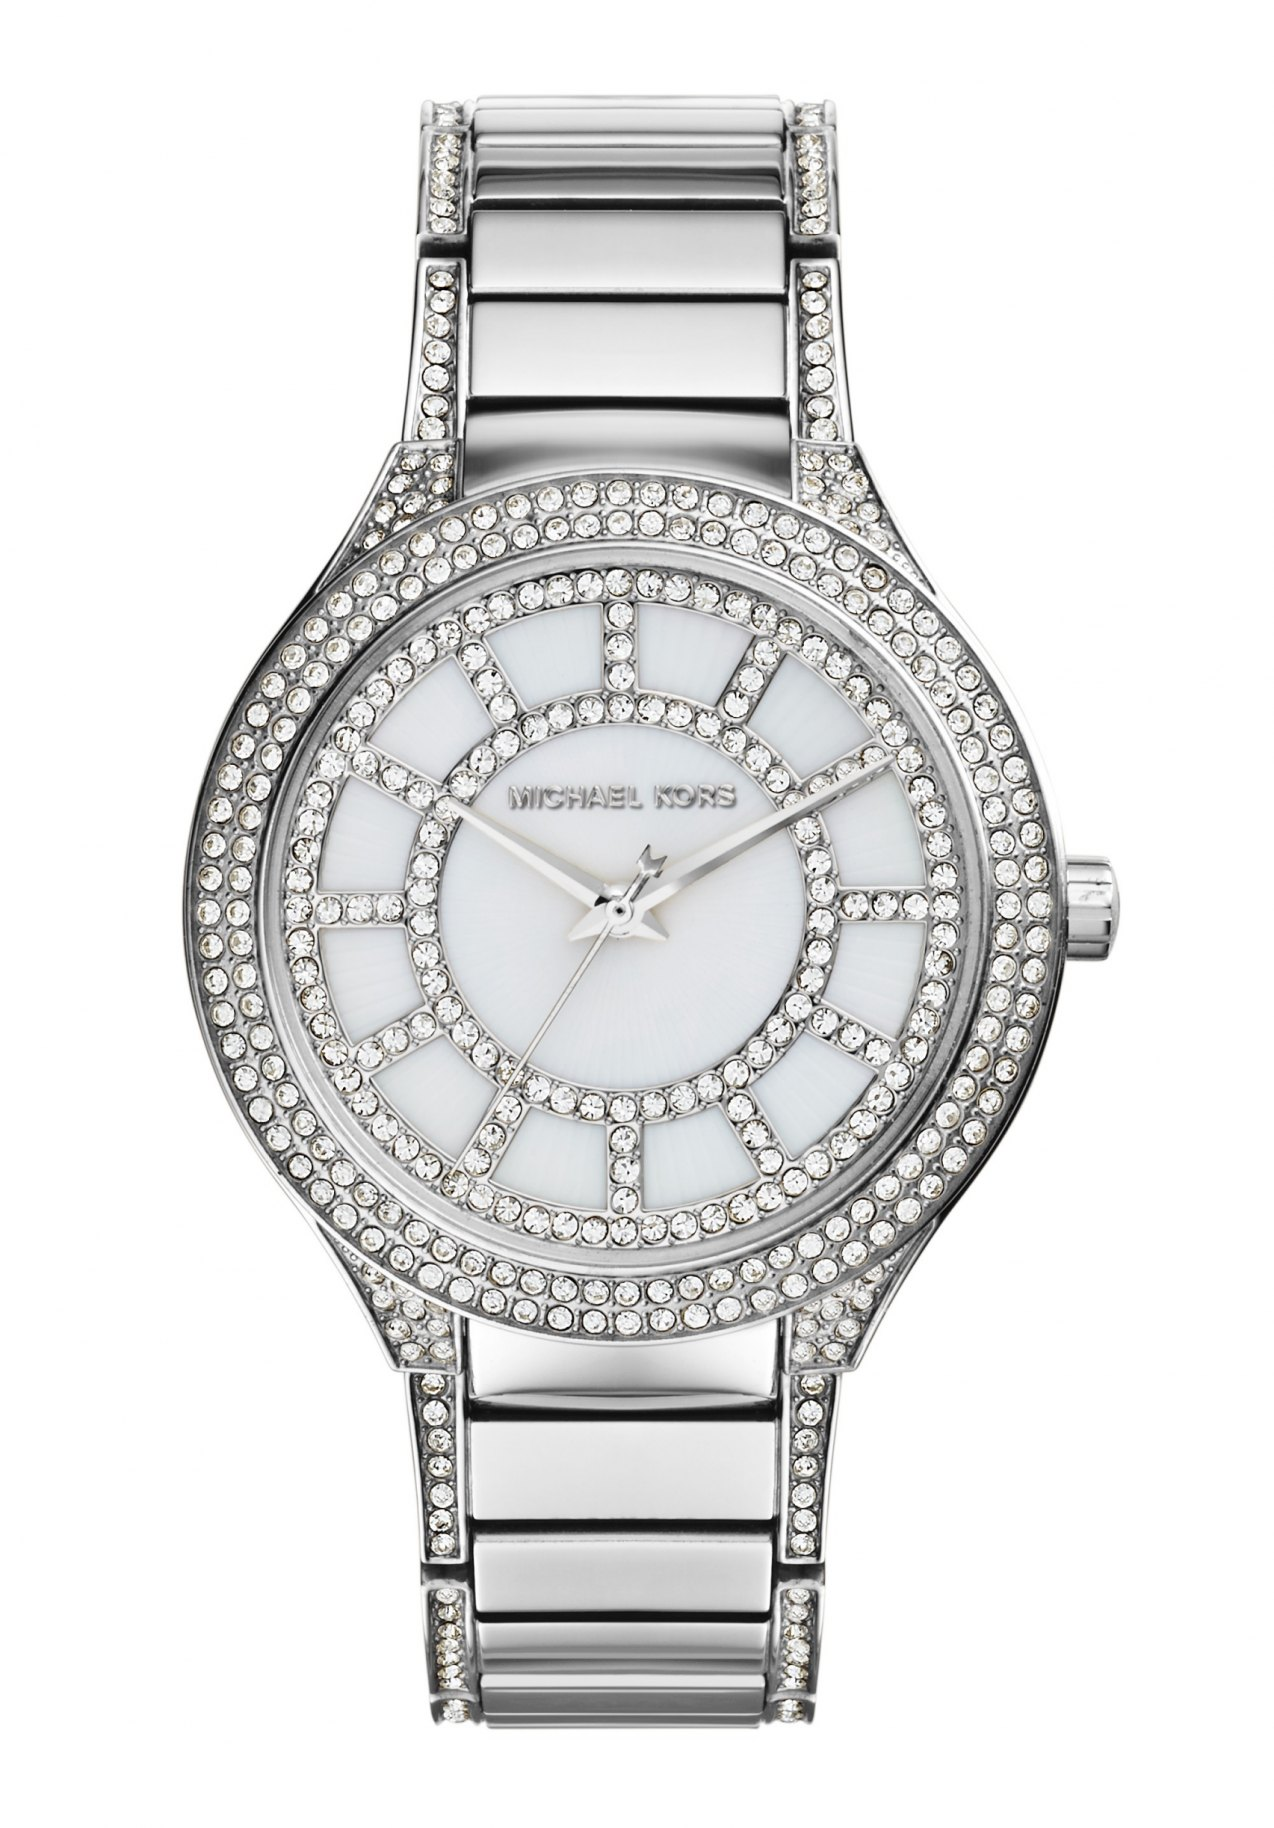 Michael Kors Kerry Silver Tone Watch MK3311 - inverno 2015